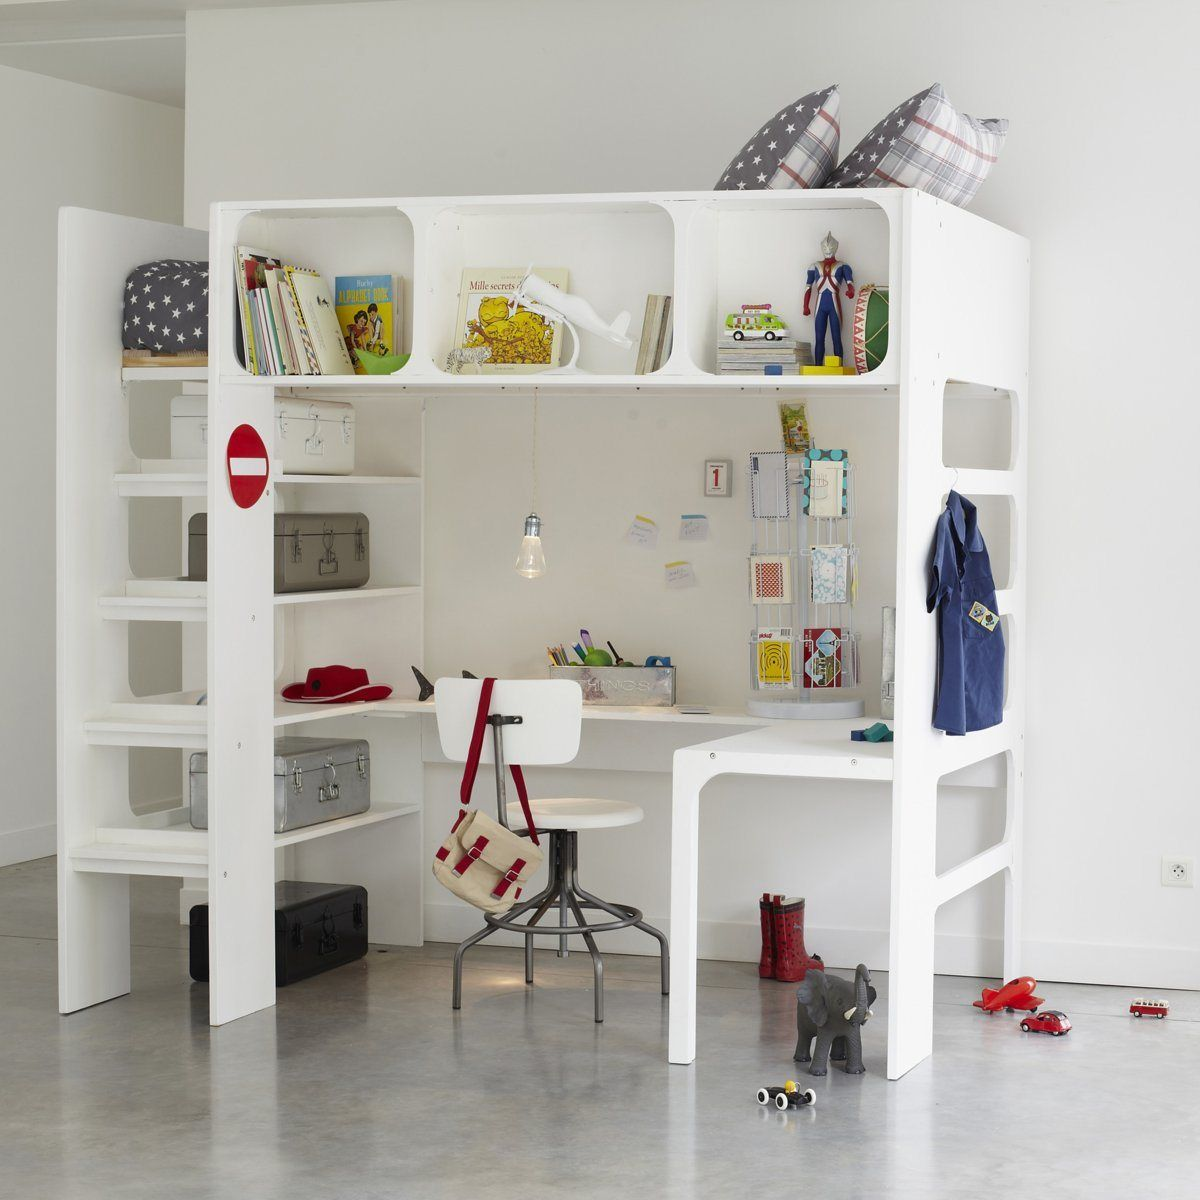 La redoute lit bureau et commode gain de place bcn amenagement int - Bureau enfant gain de place ...